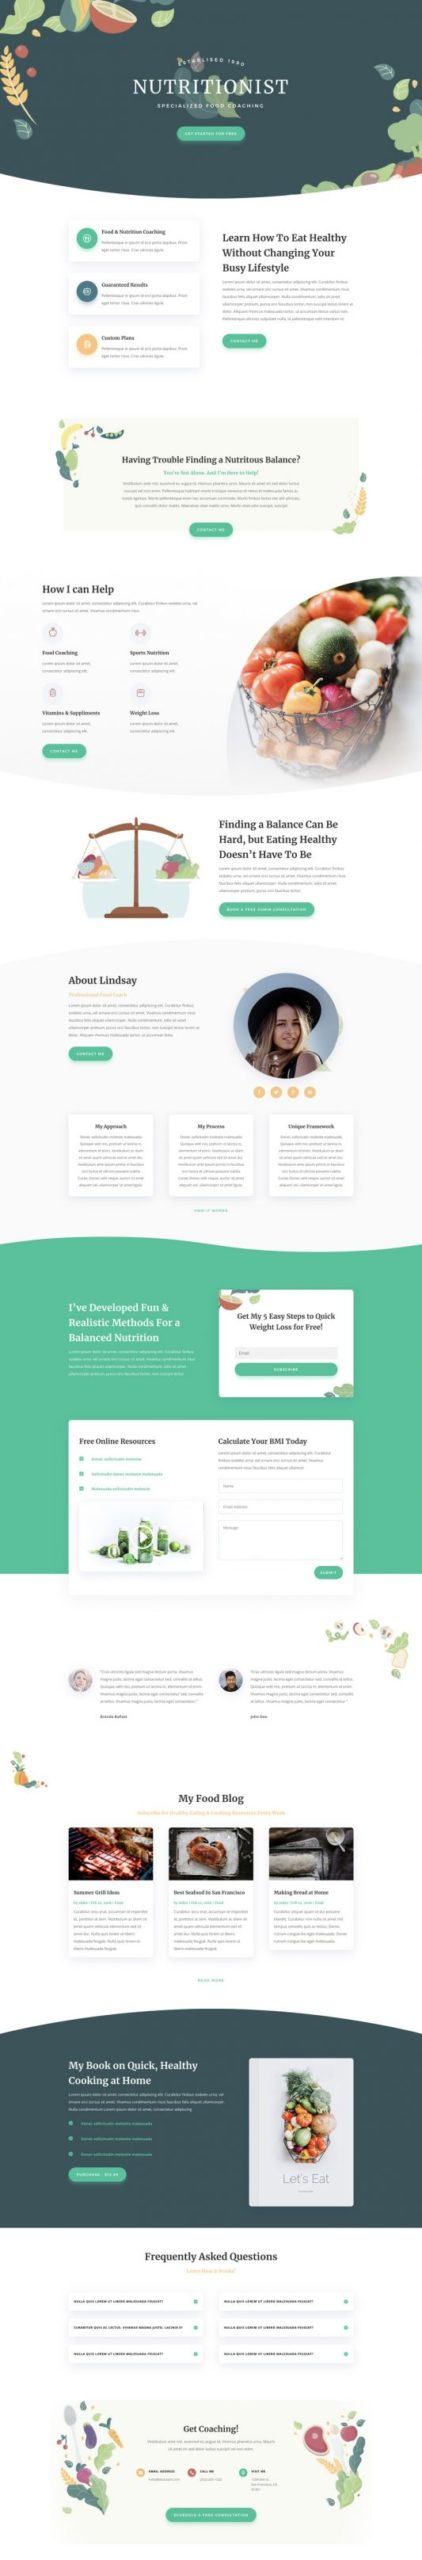 Nutritionist Landing Page